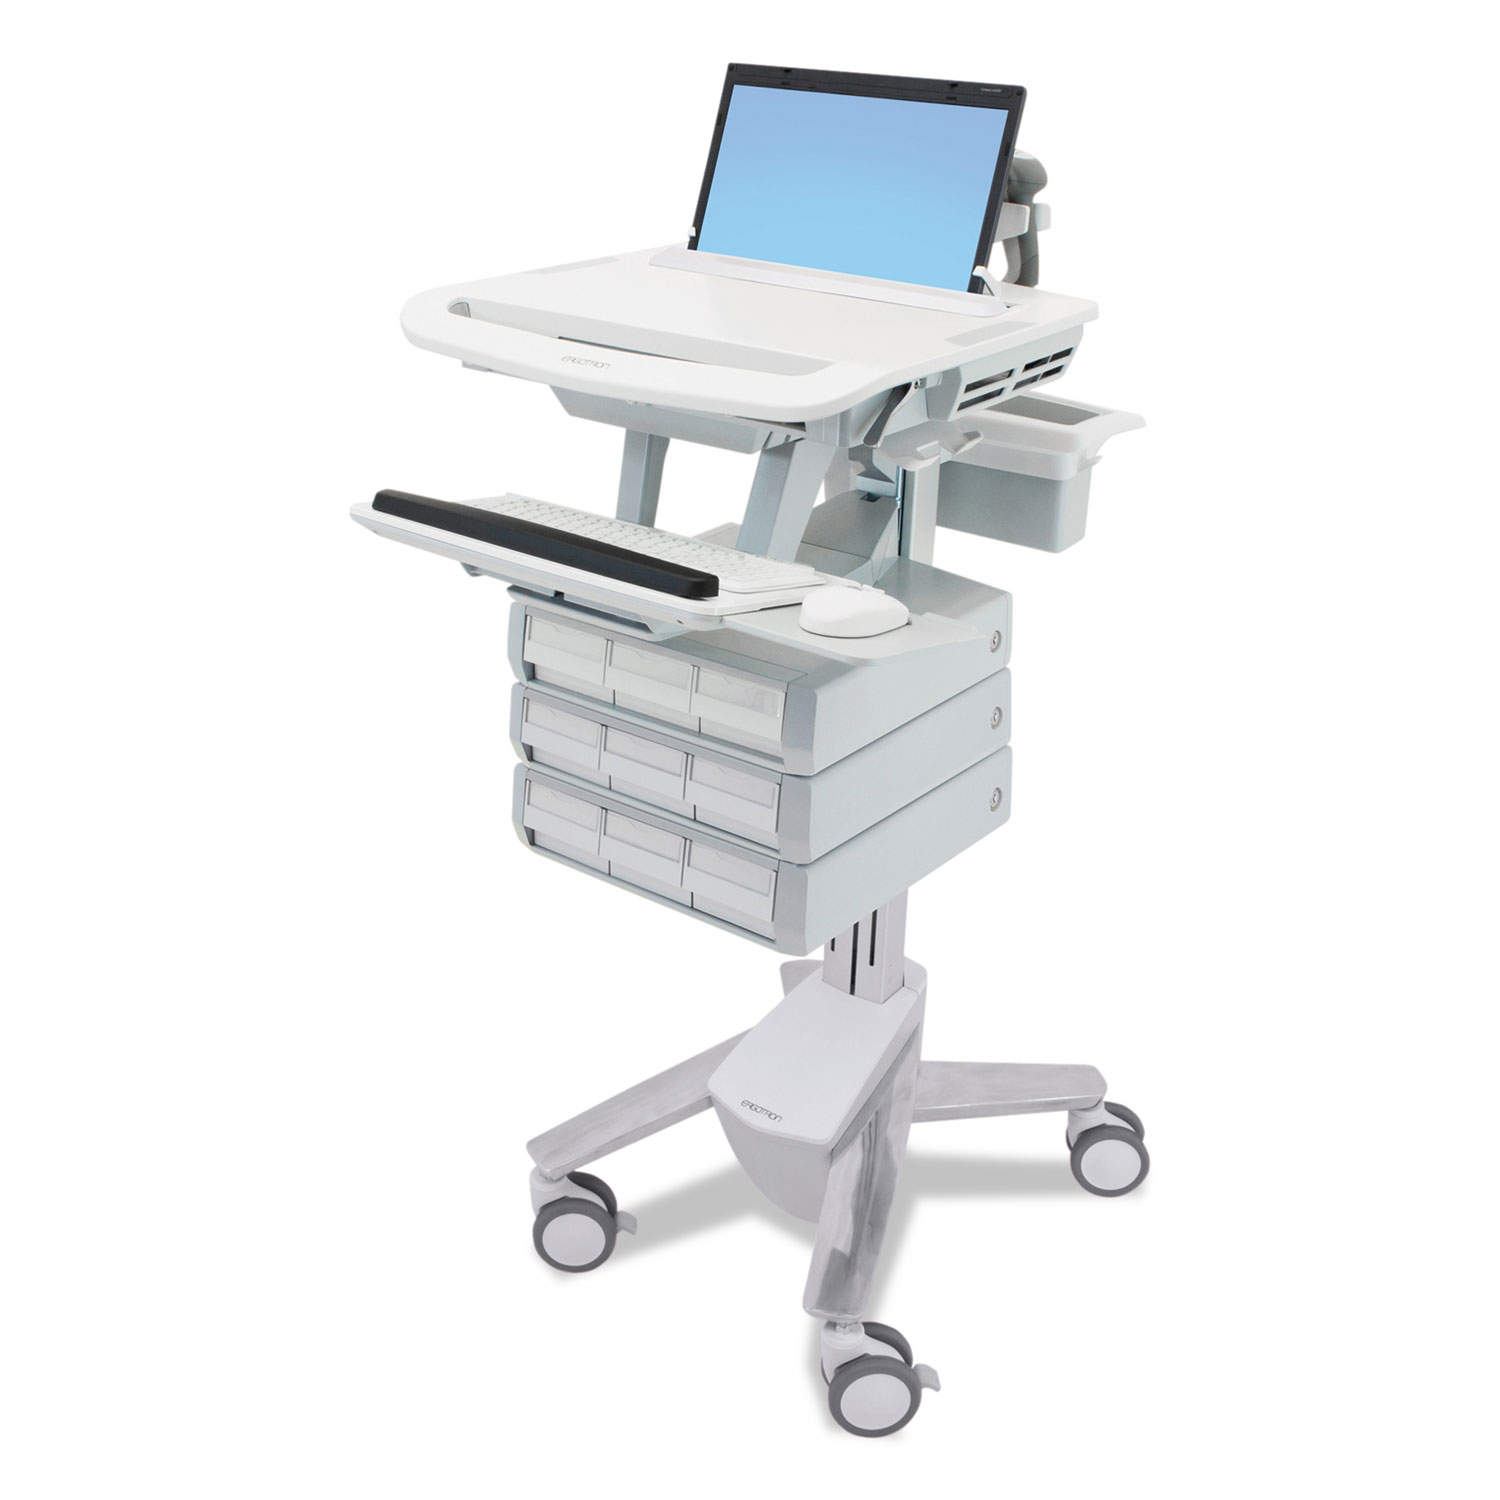 StyleView Laptop Cart, 9 Drawers, 22 X 31 X 50 1/2 To 51, White/Gray